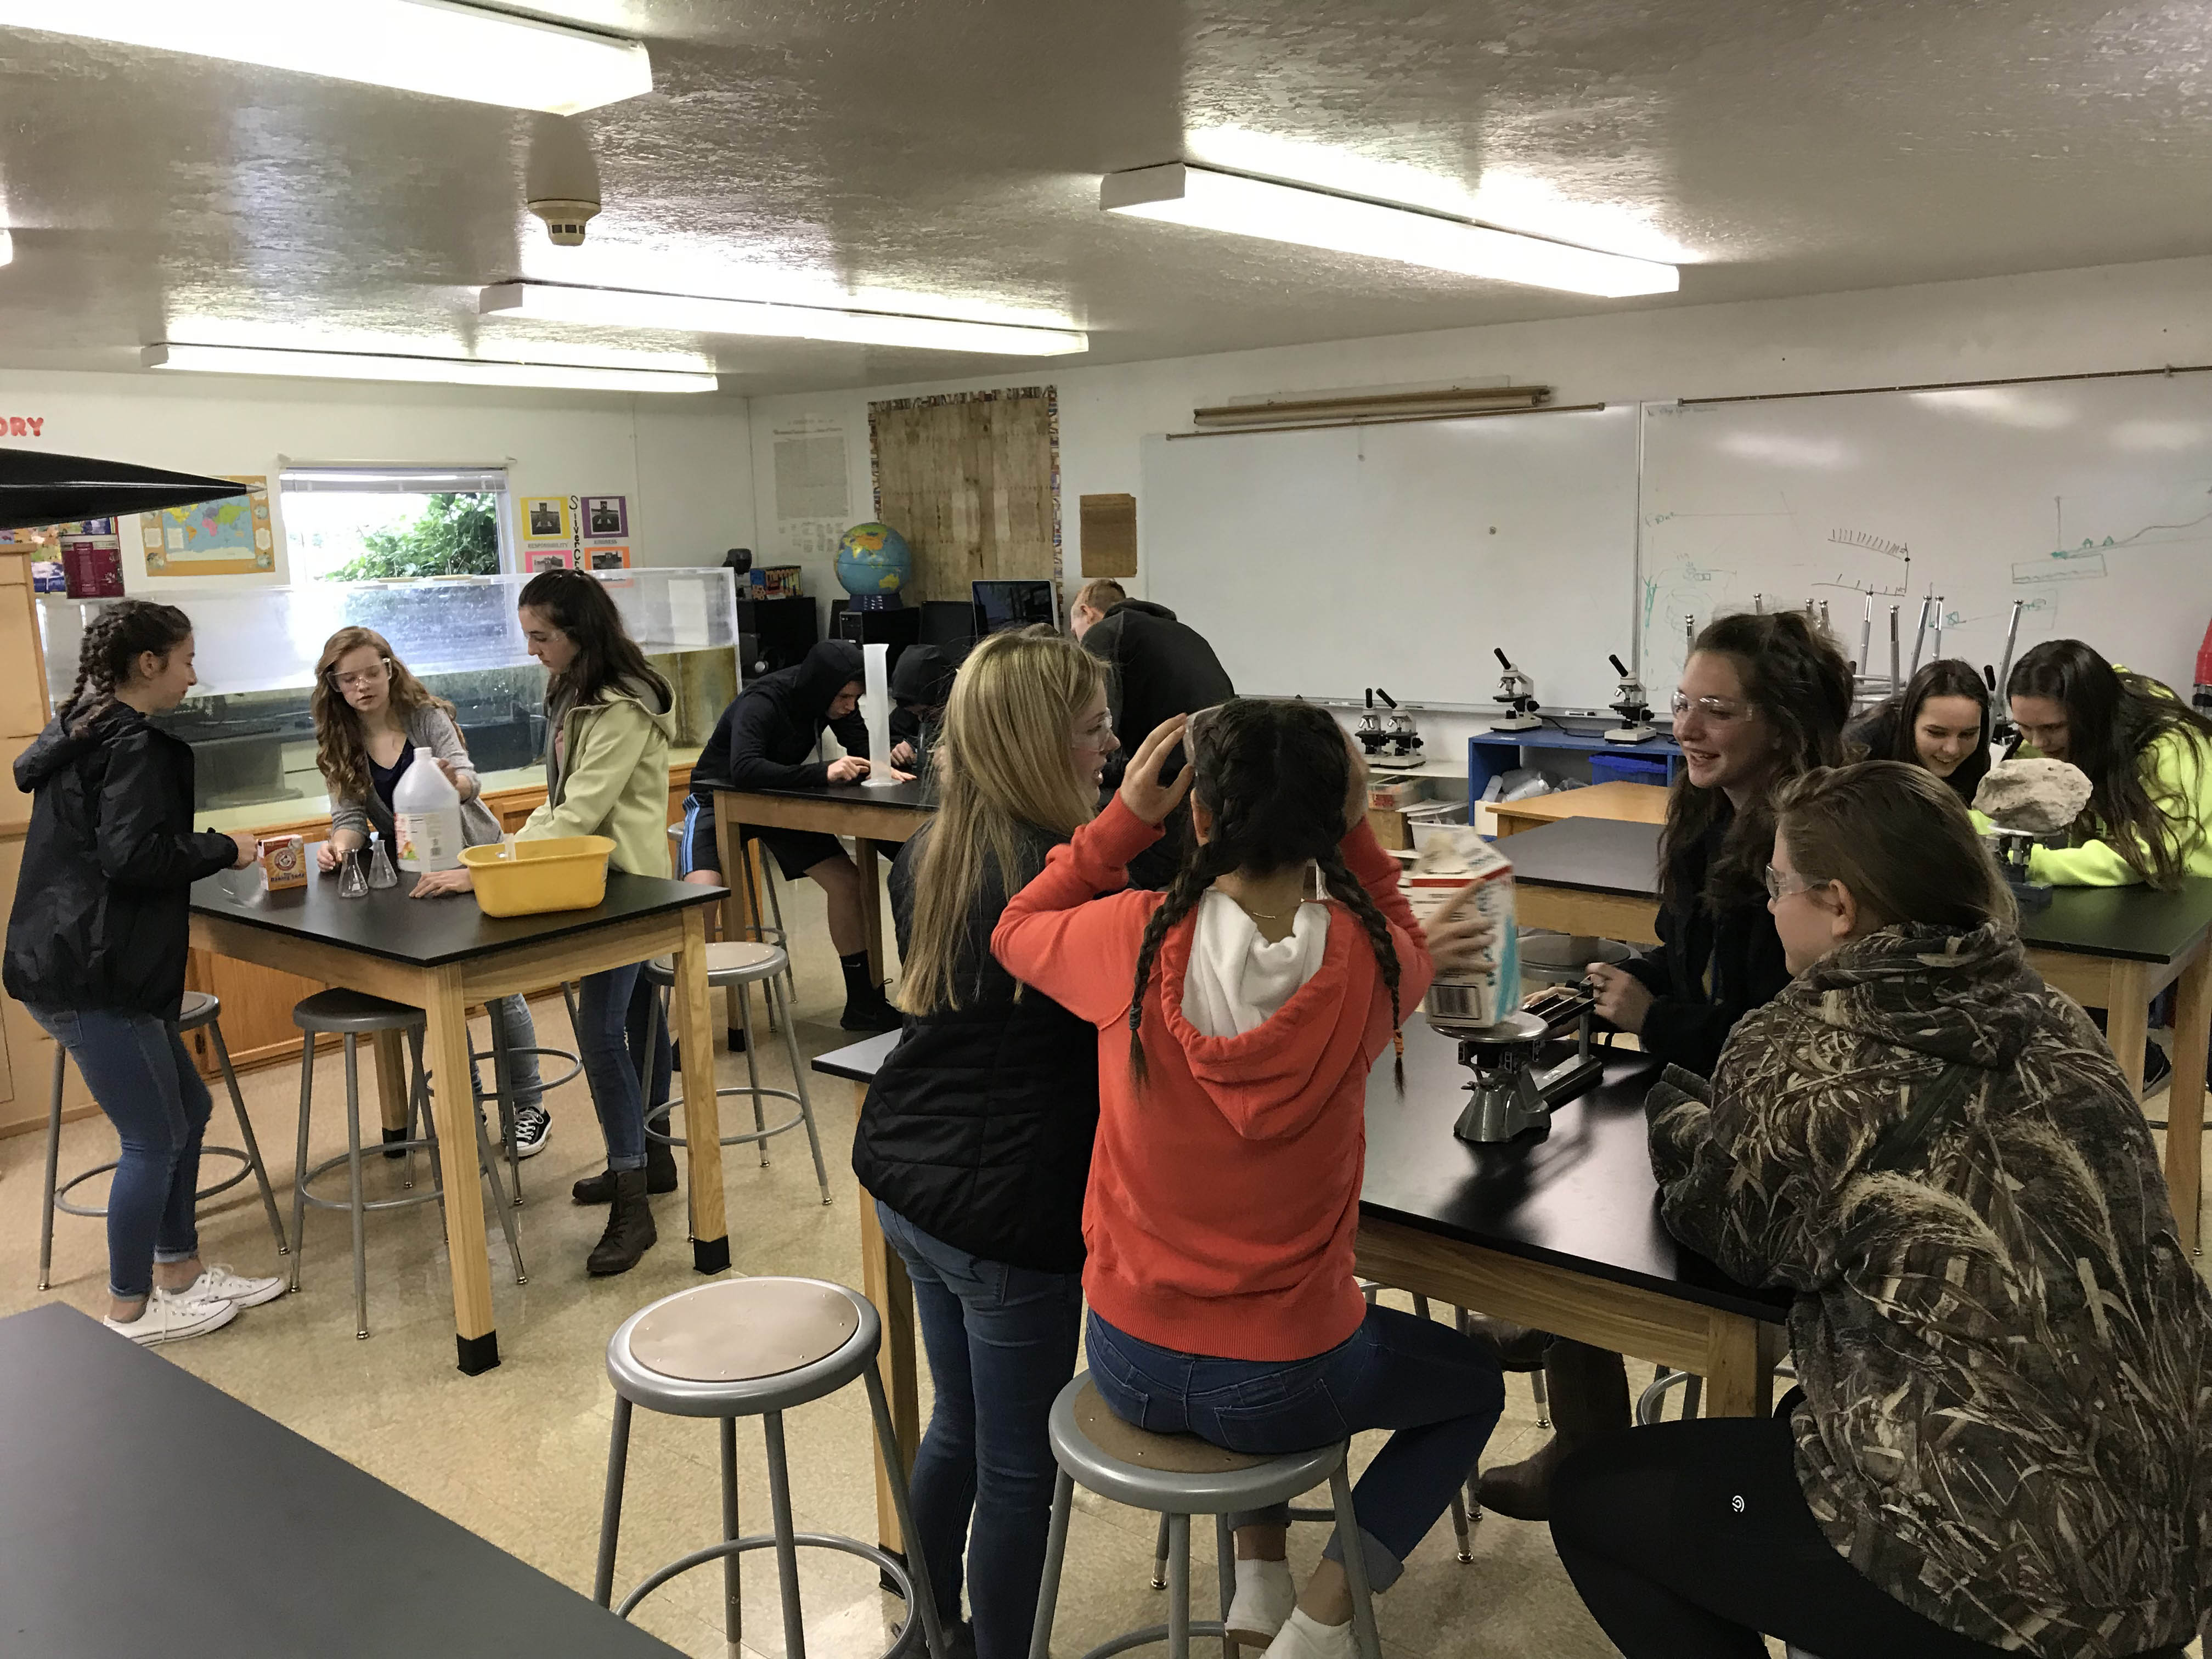 8th Grade Students at Silverton Crest Participate in Science activities on their new tables